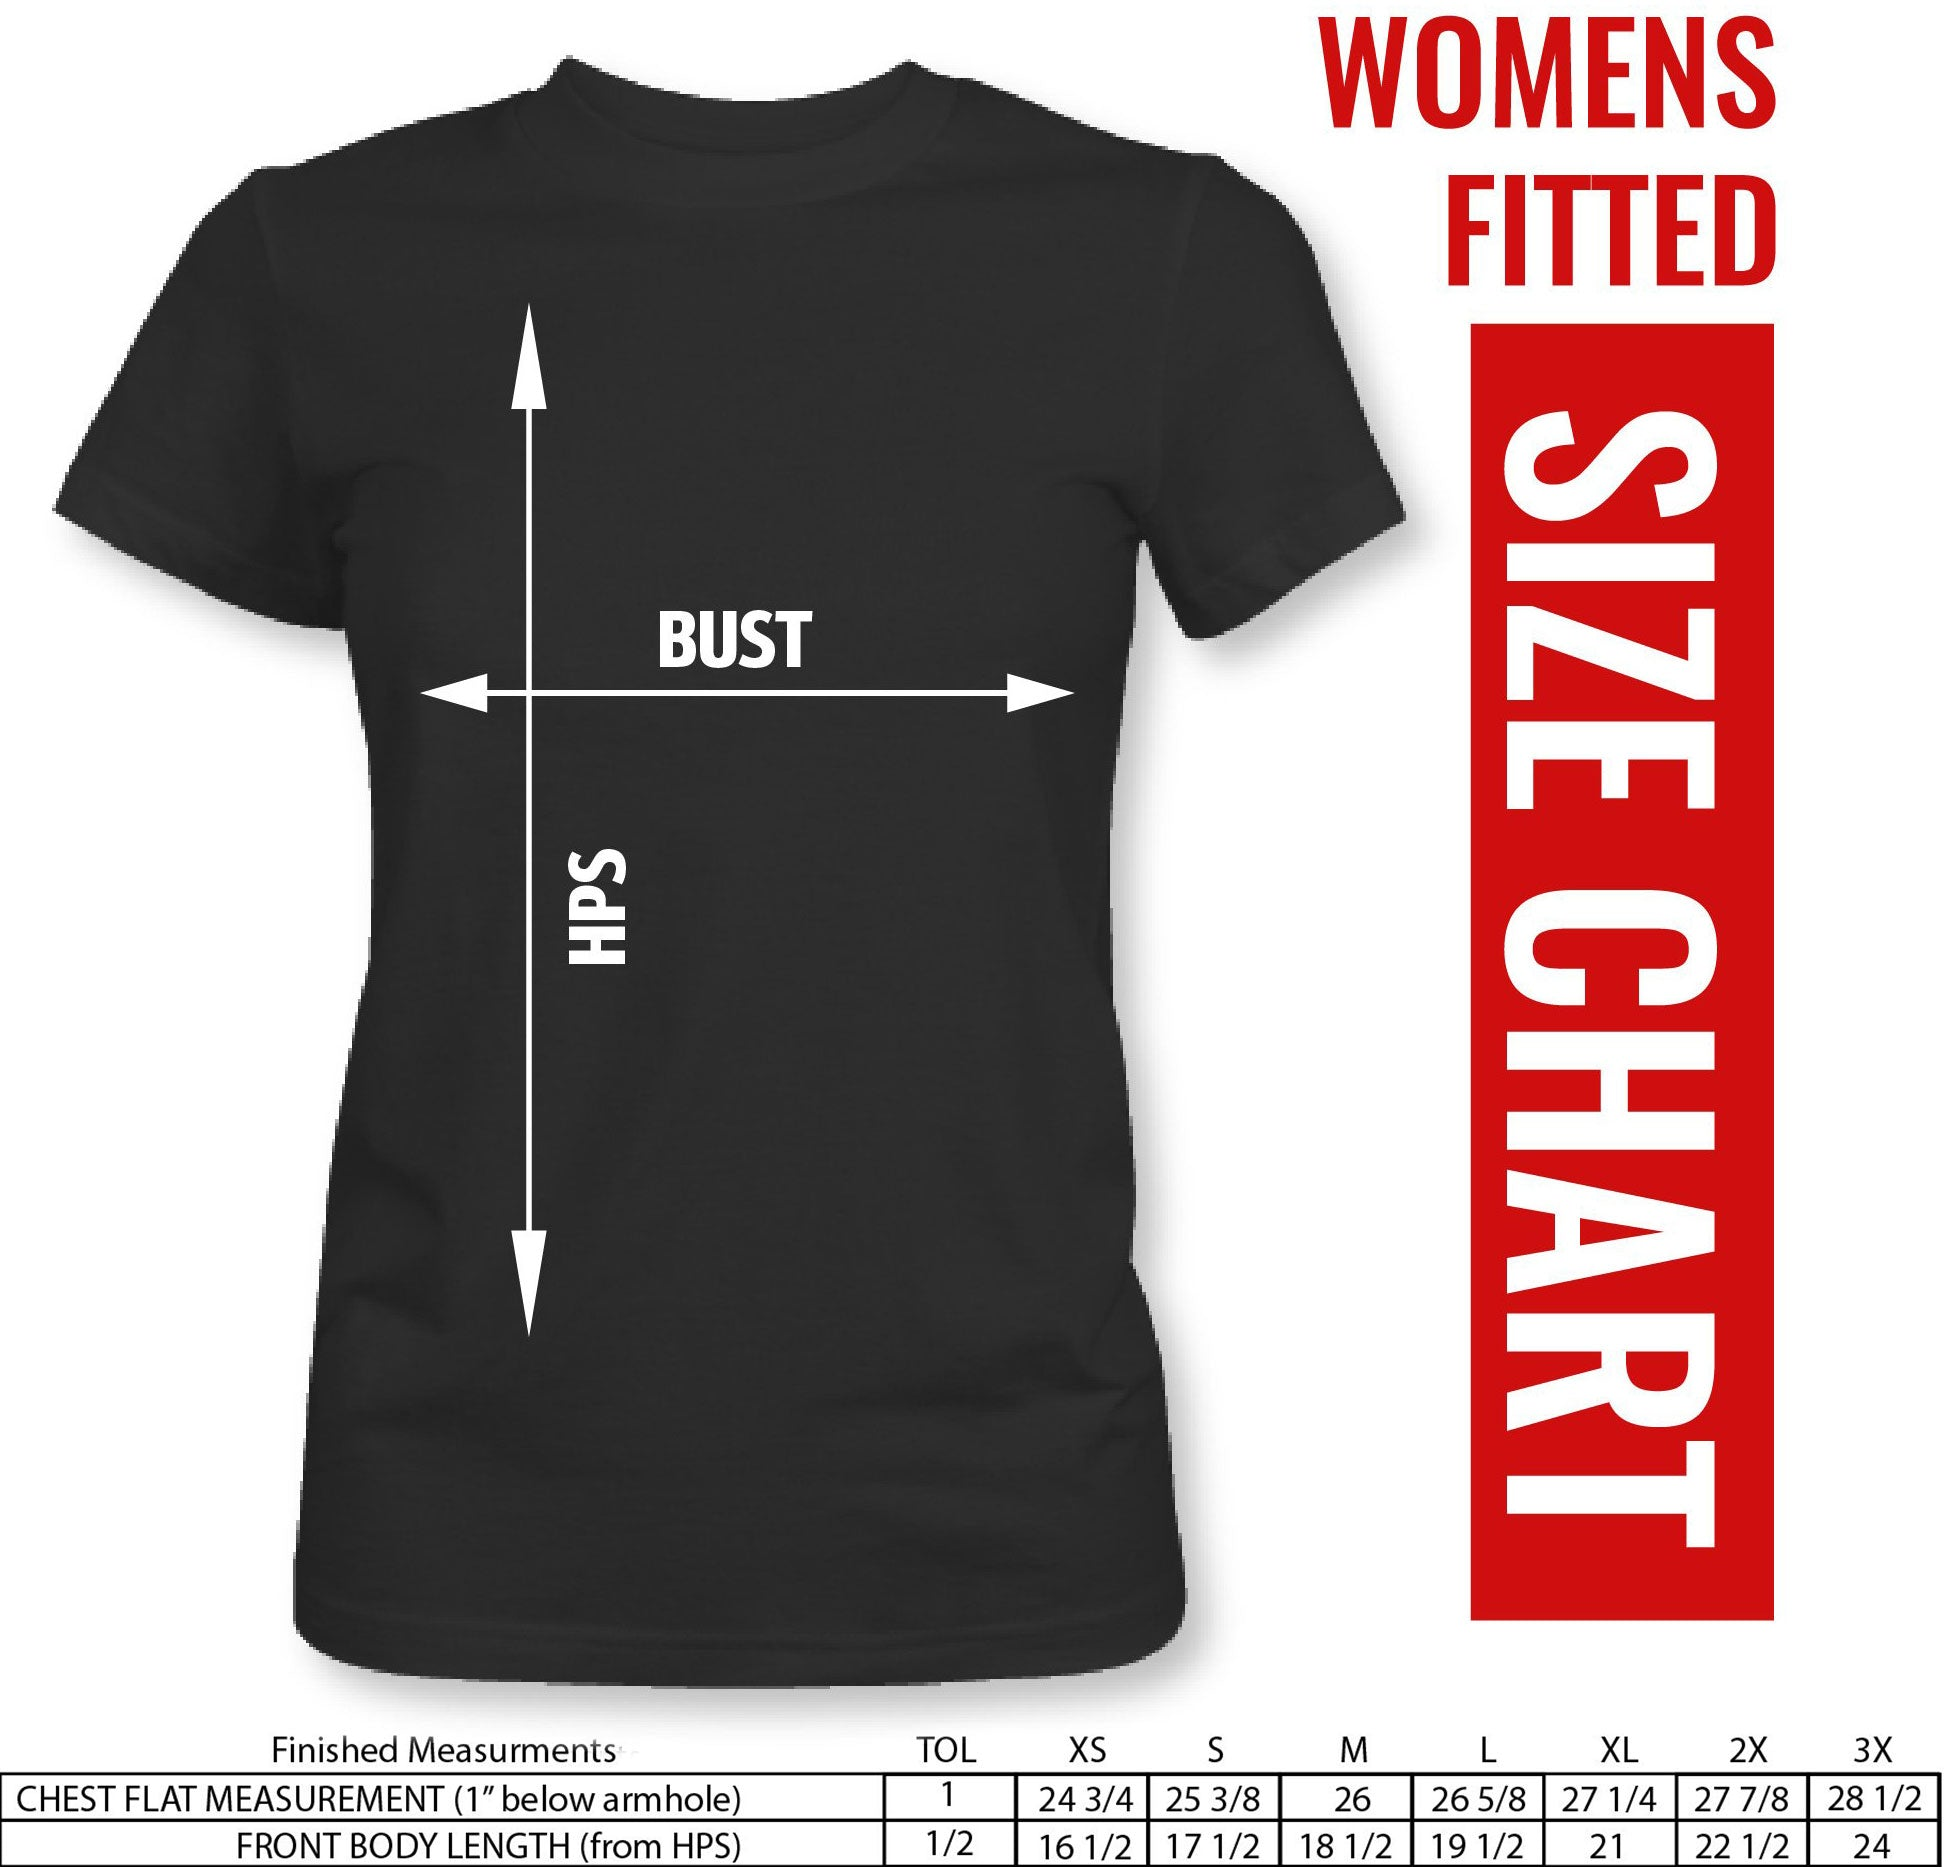 Fitted Size Chart